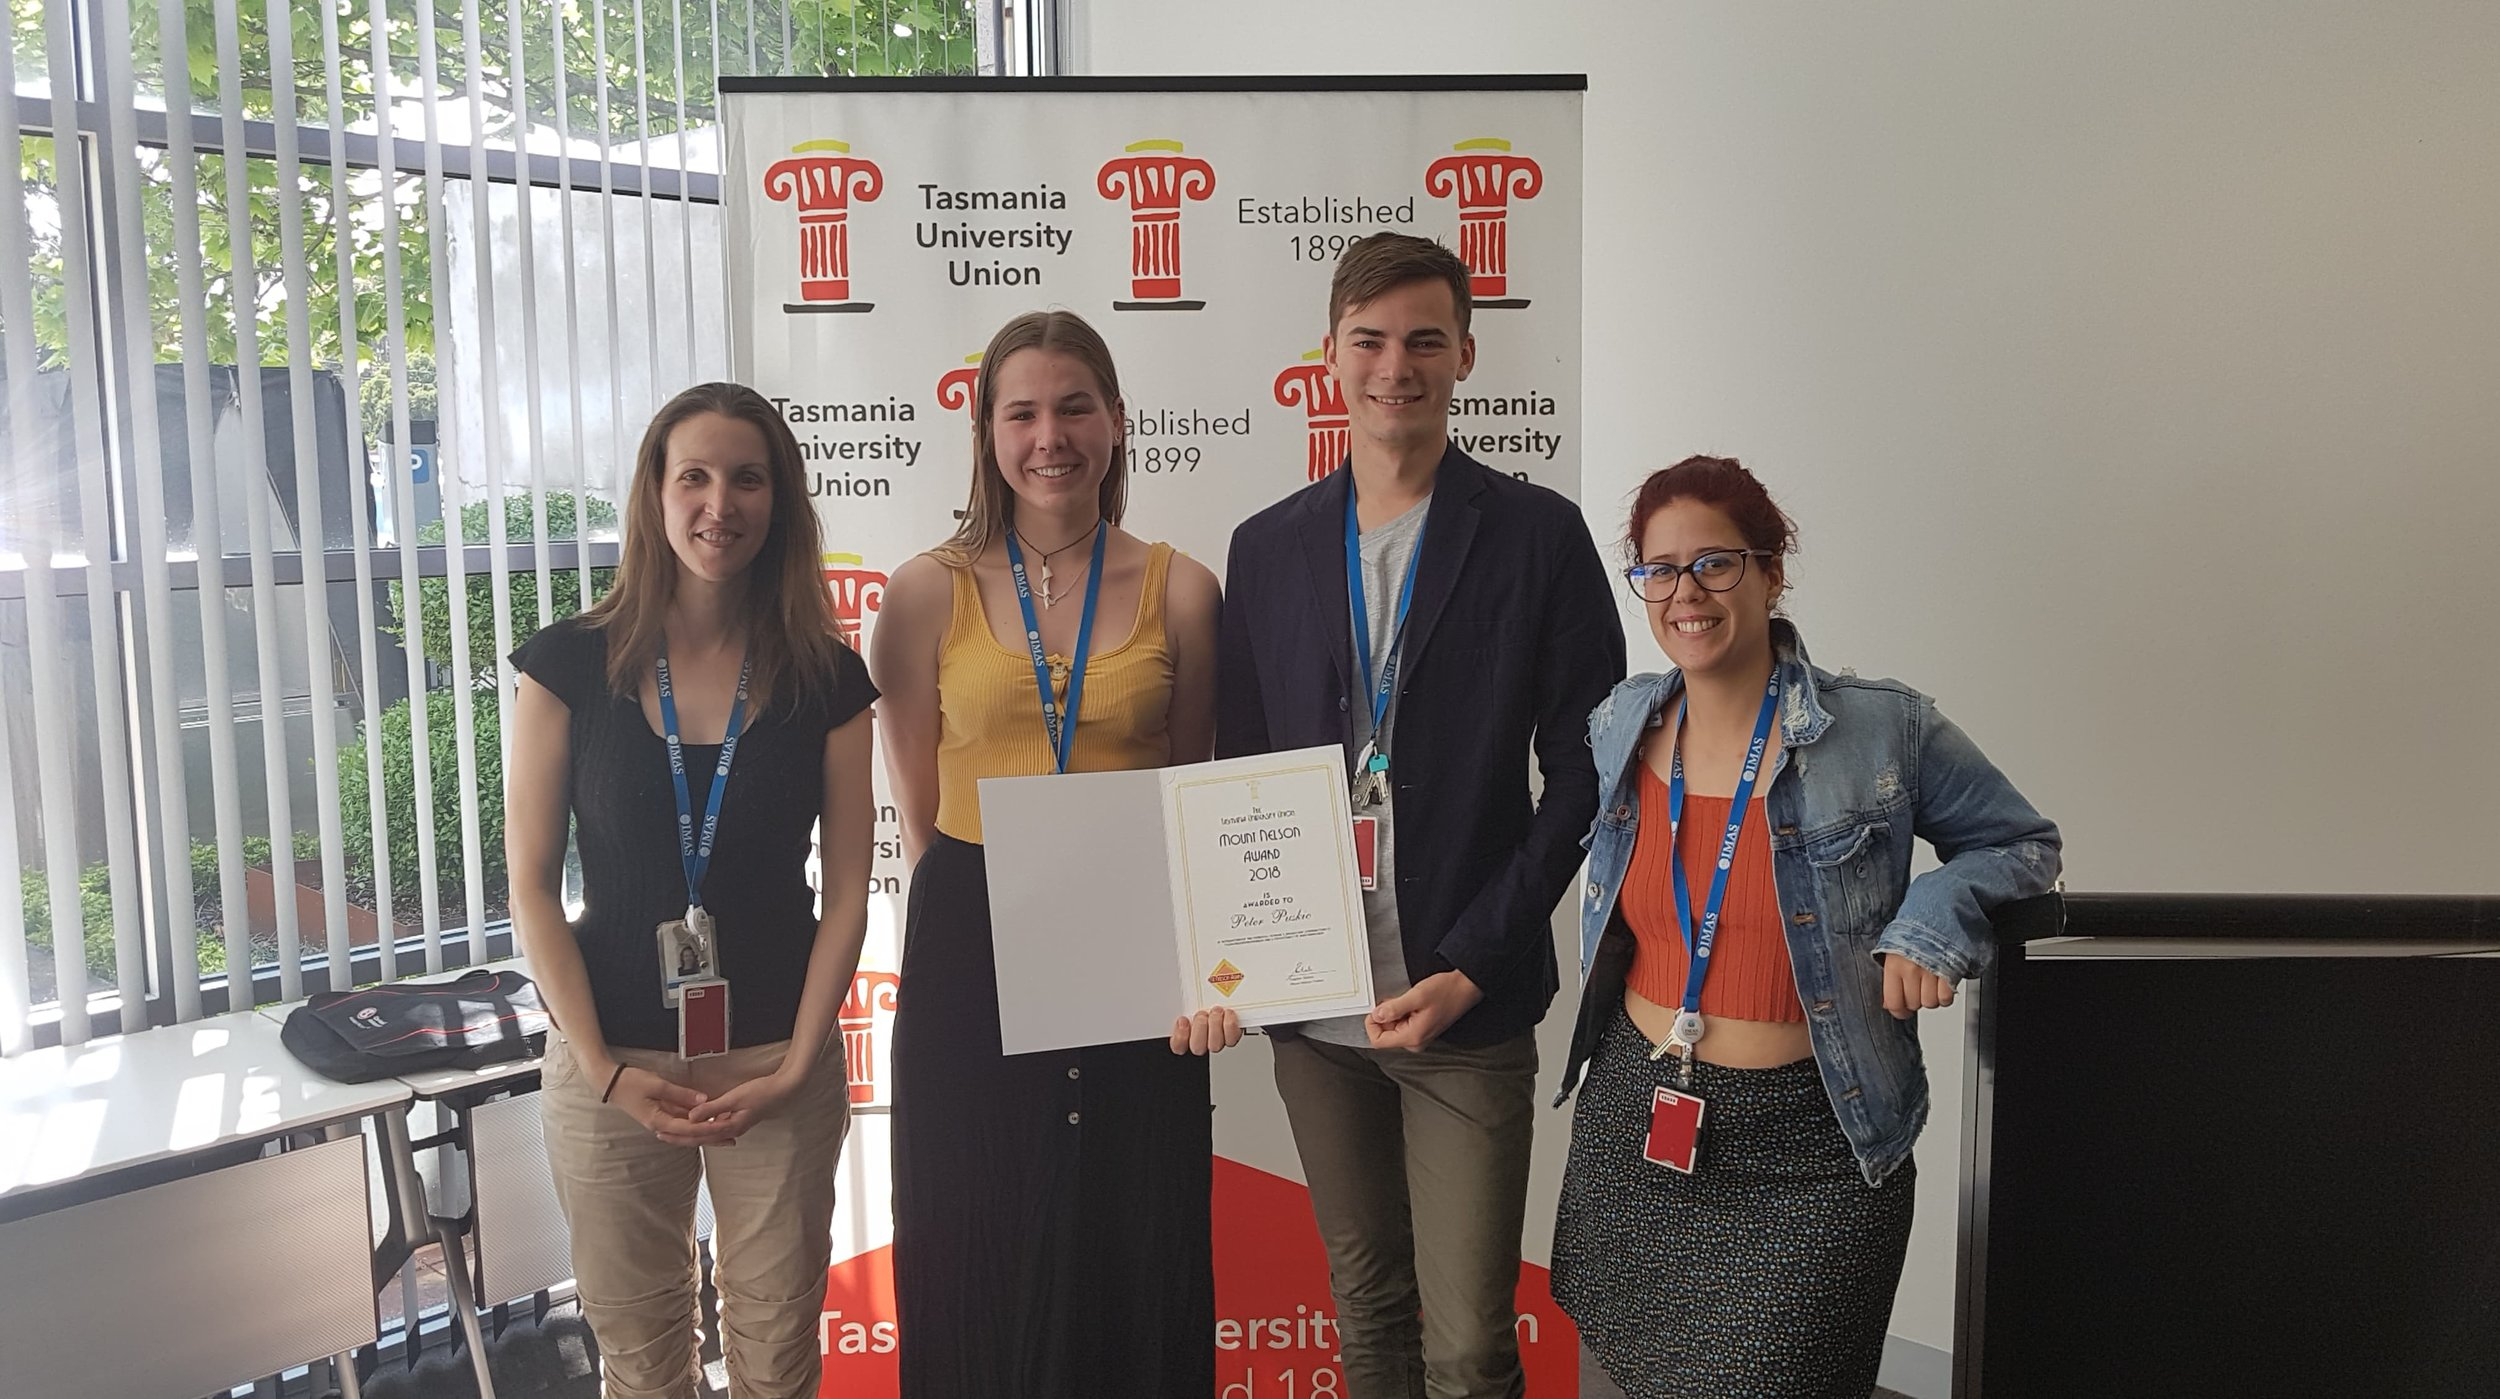 Peter (3rd from left) celebrating his Mount Nelson Award with fellow Adrifters Jennifer Lavers, Megan Grant, and Catarina Goncalves.